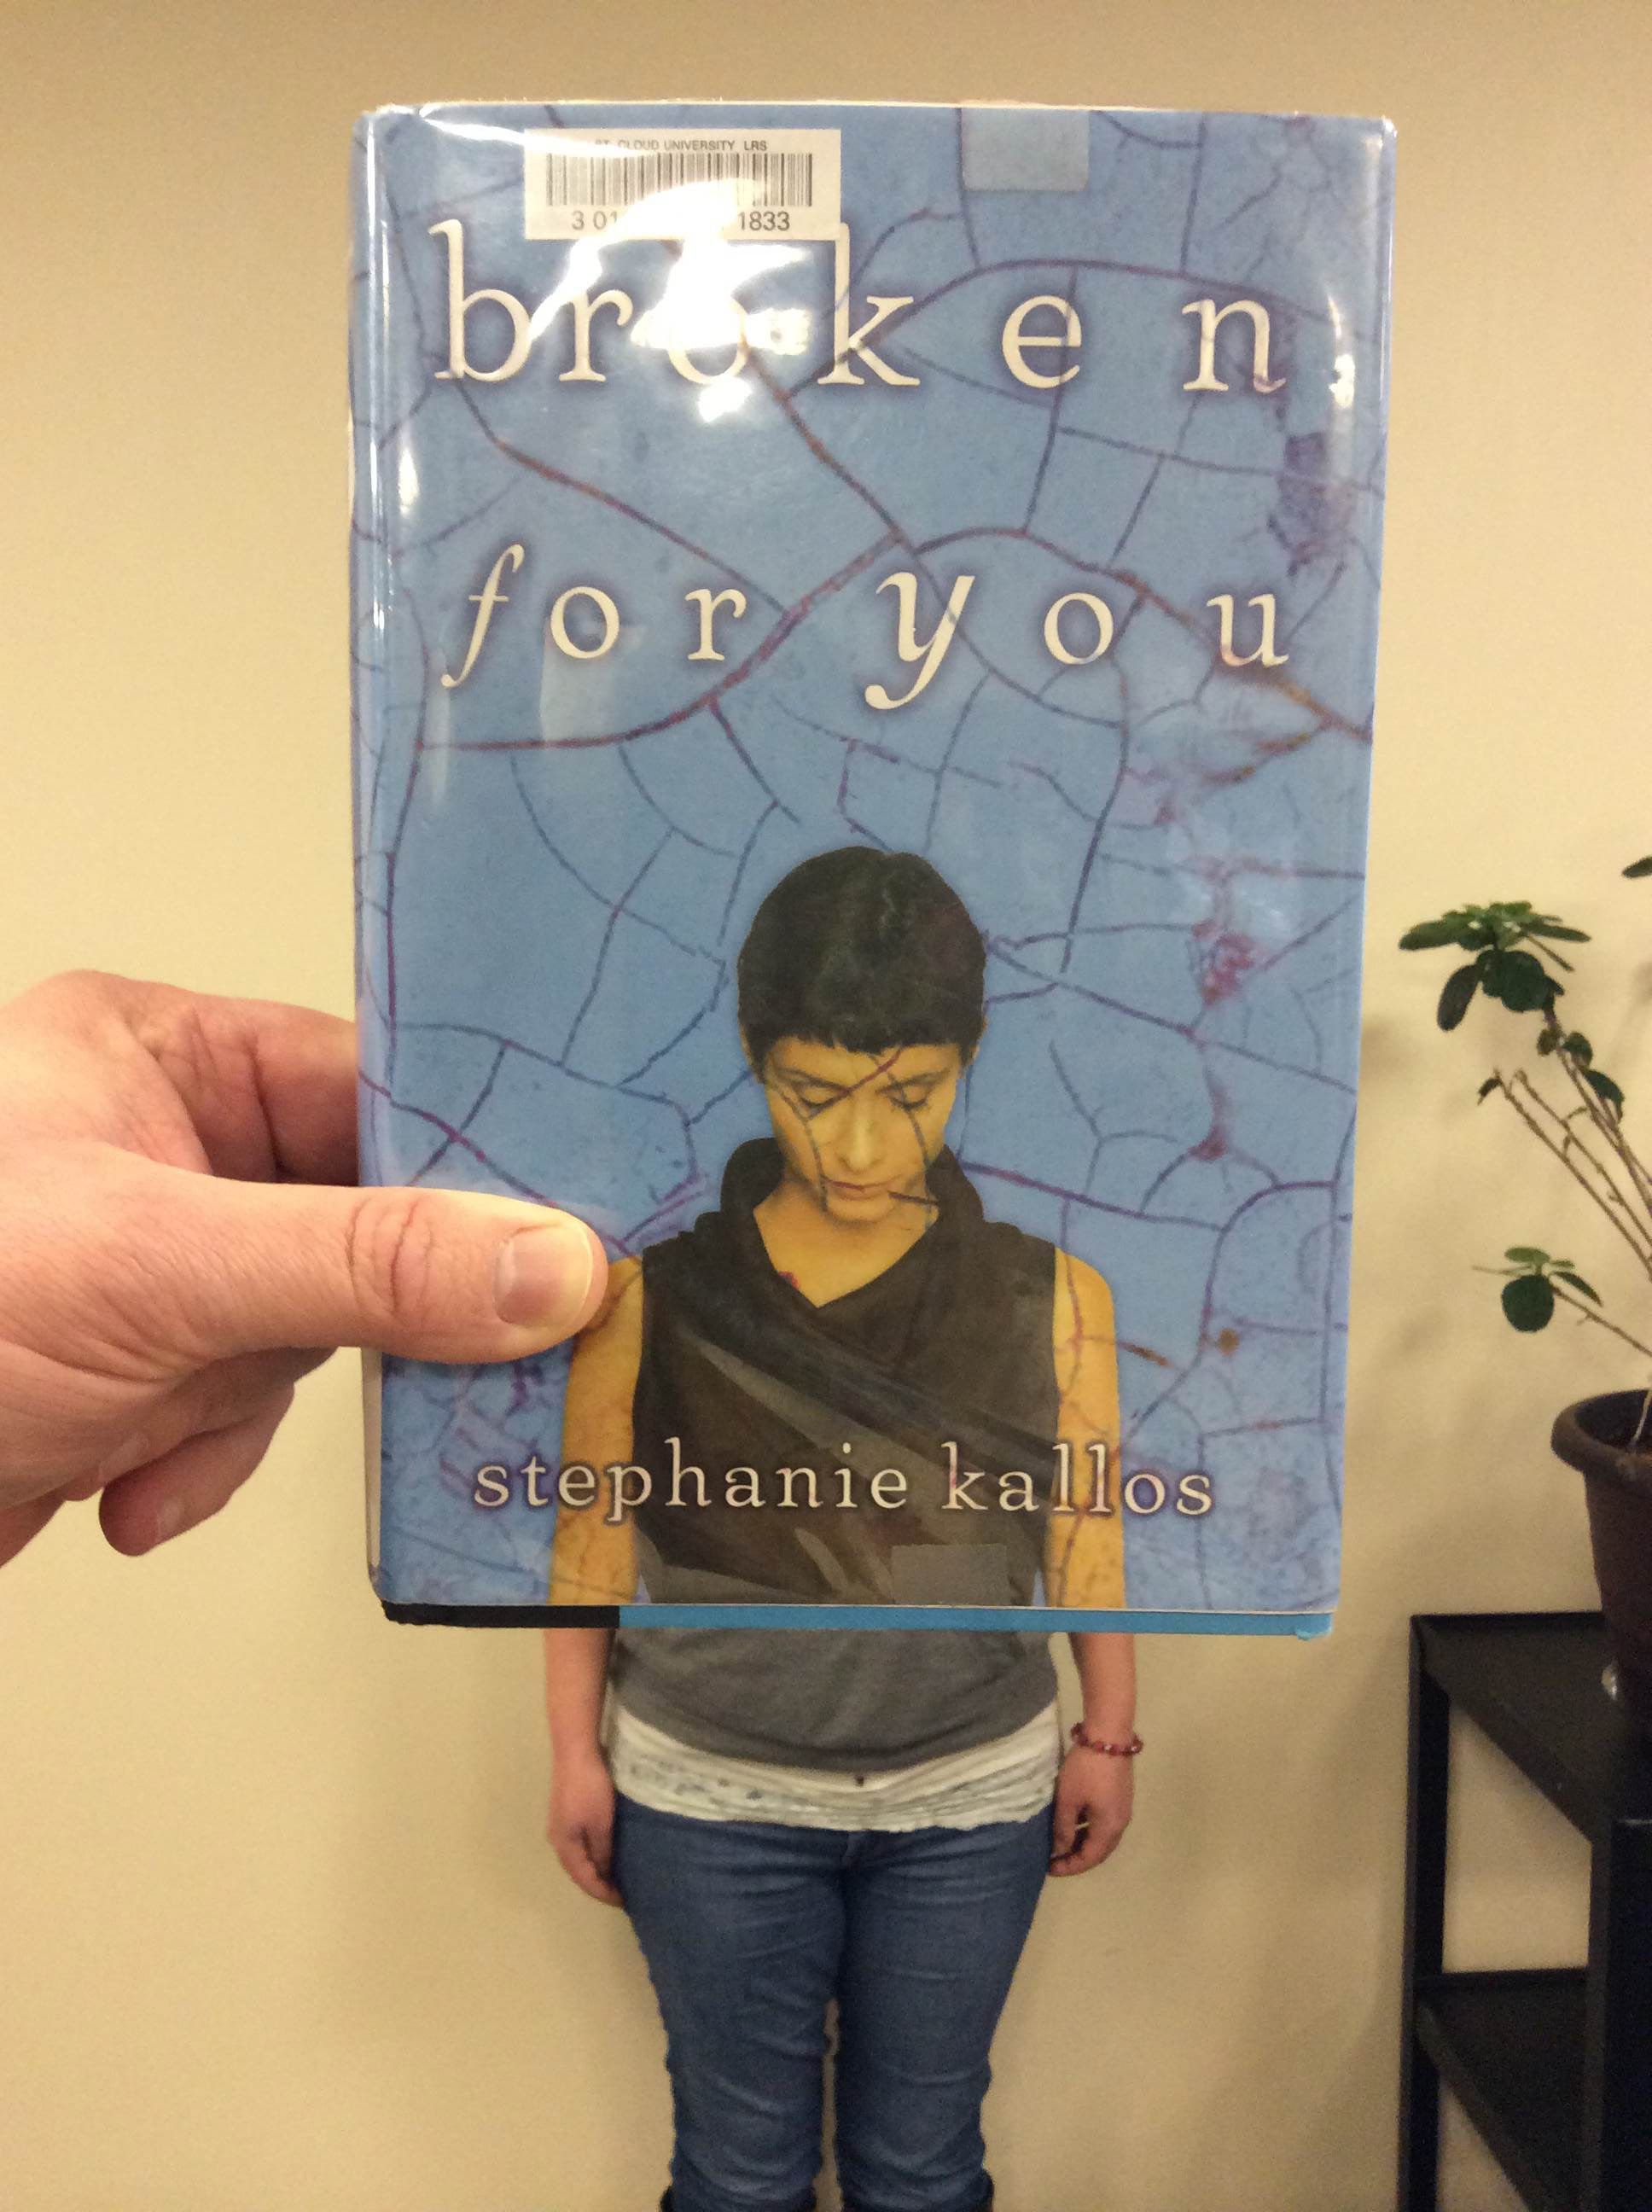 #BookFaceFriday of Broken for You by Stephanie Kallos #bookface #scsulibrary